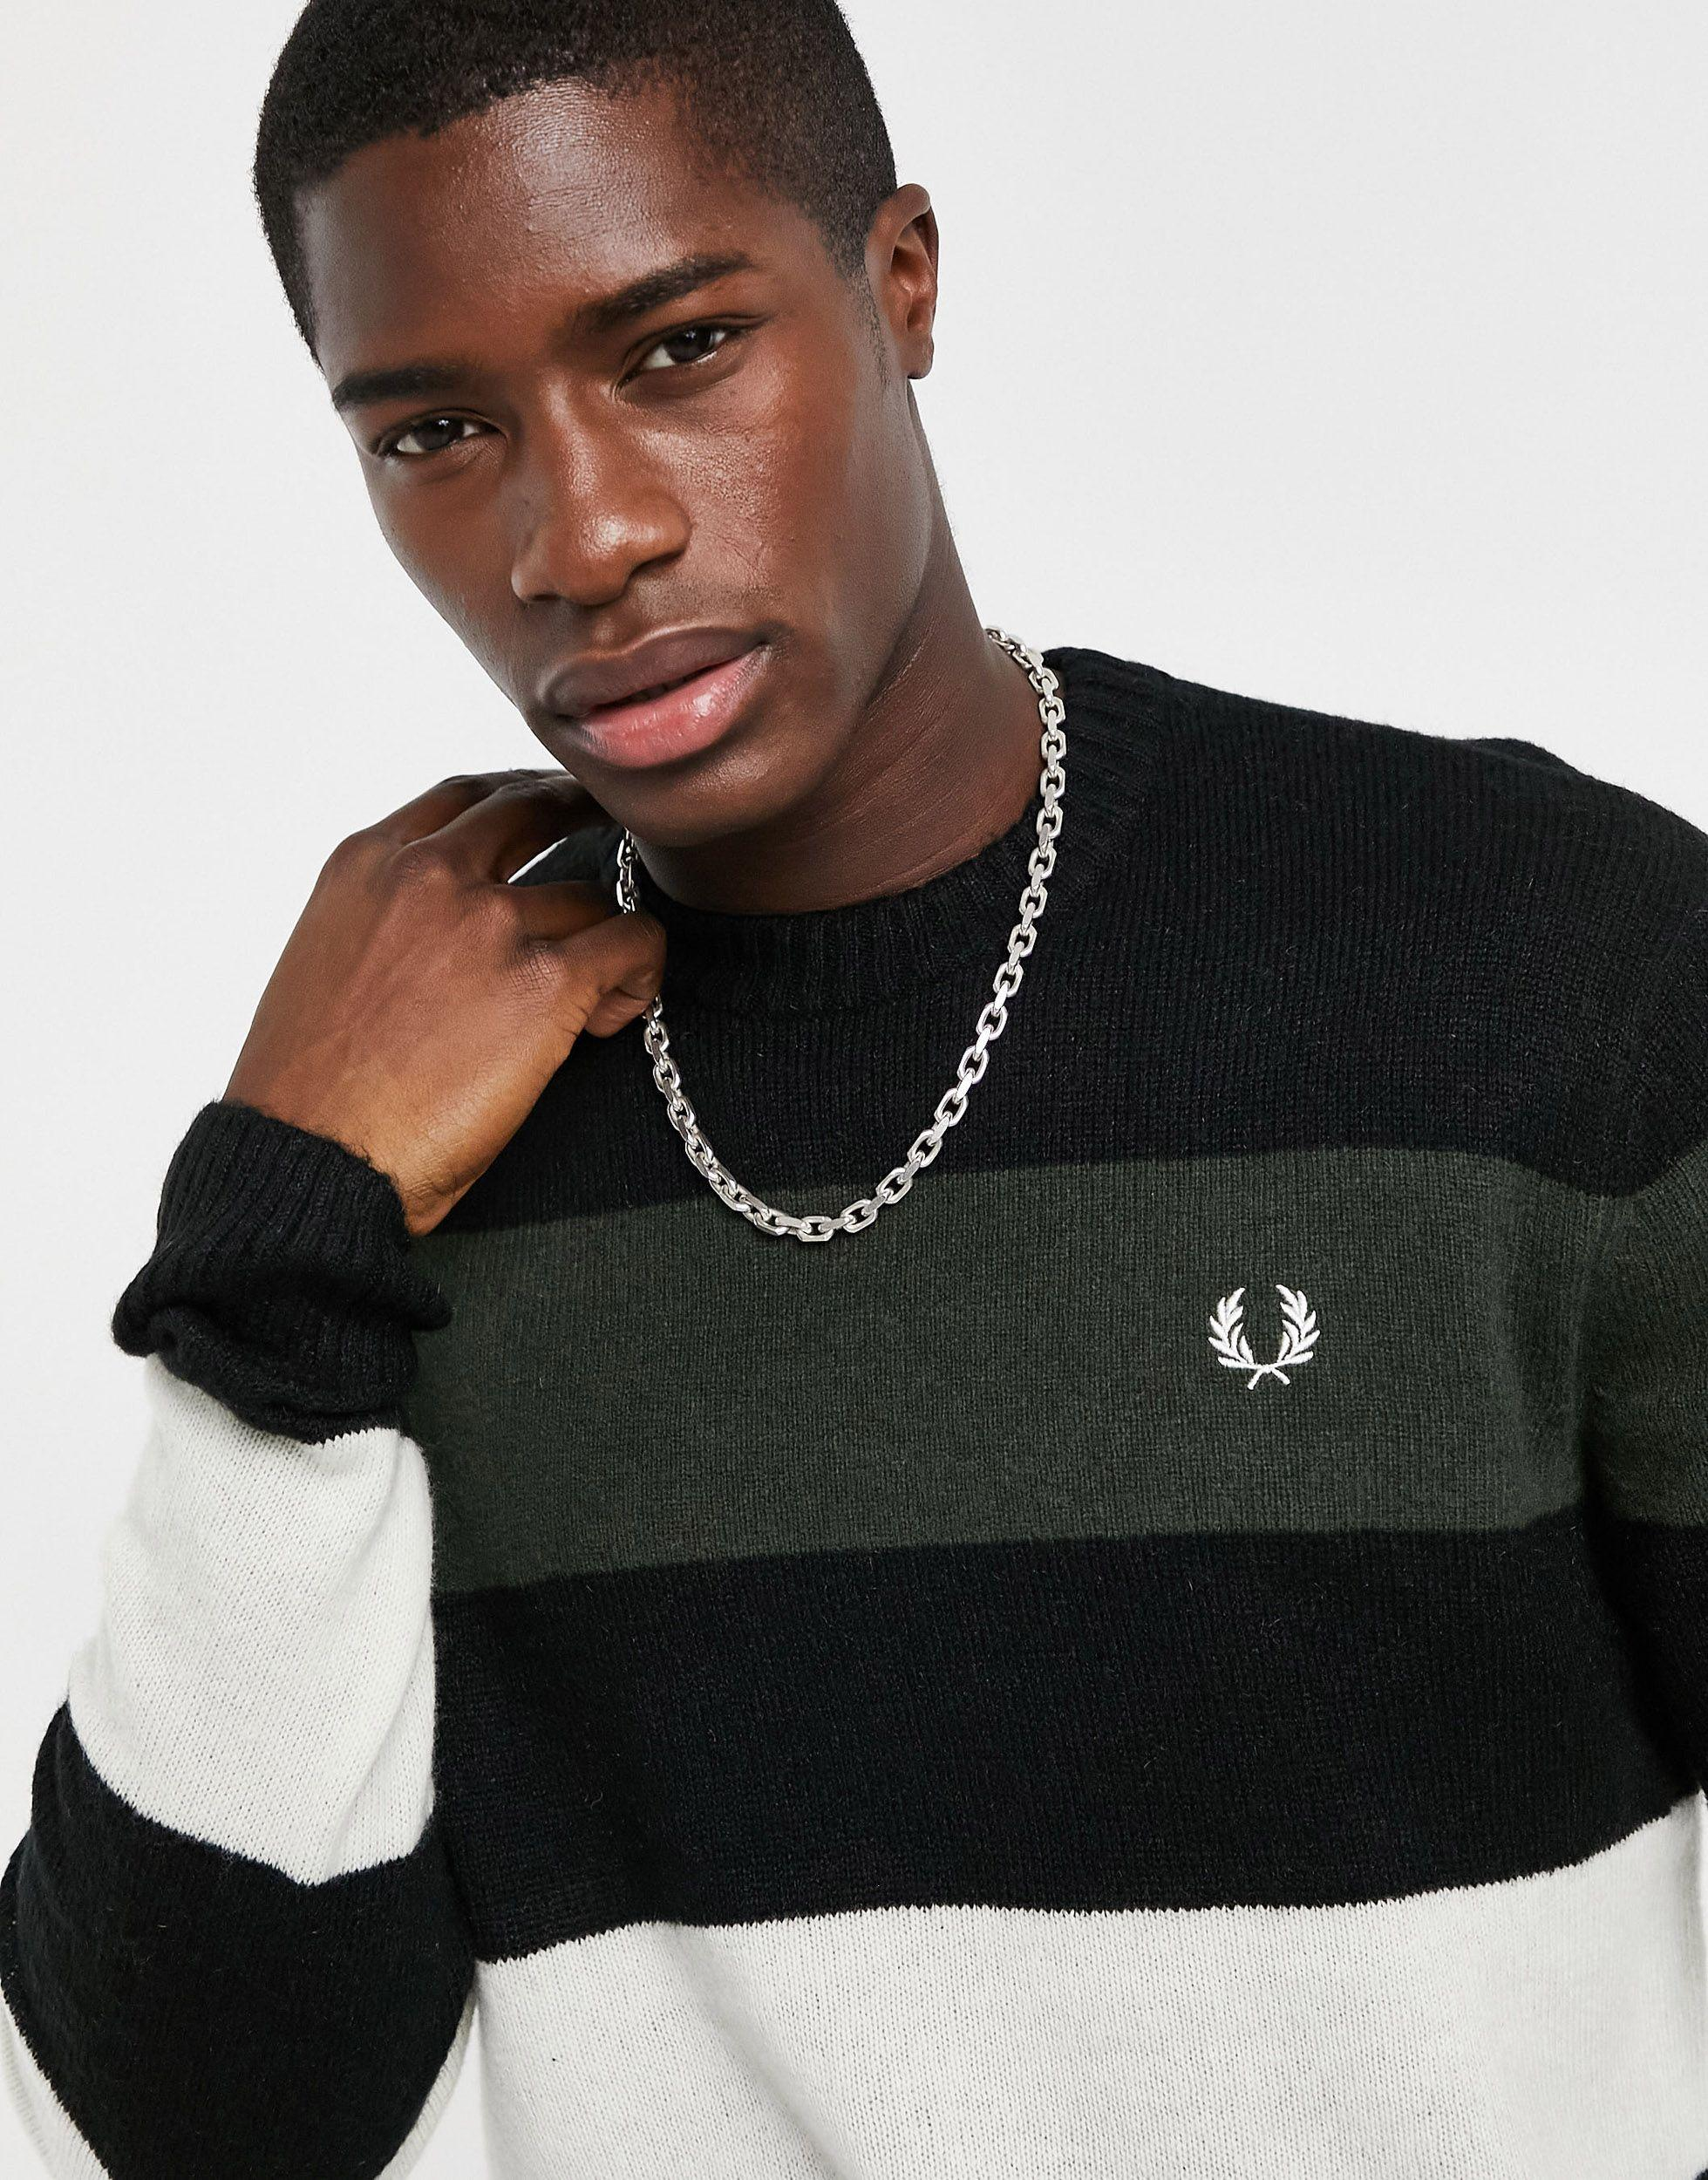 Black Fred Perry L//S Zip Neck Knitted Shirt